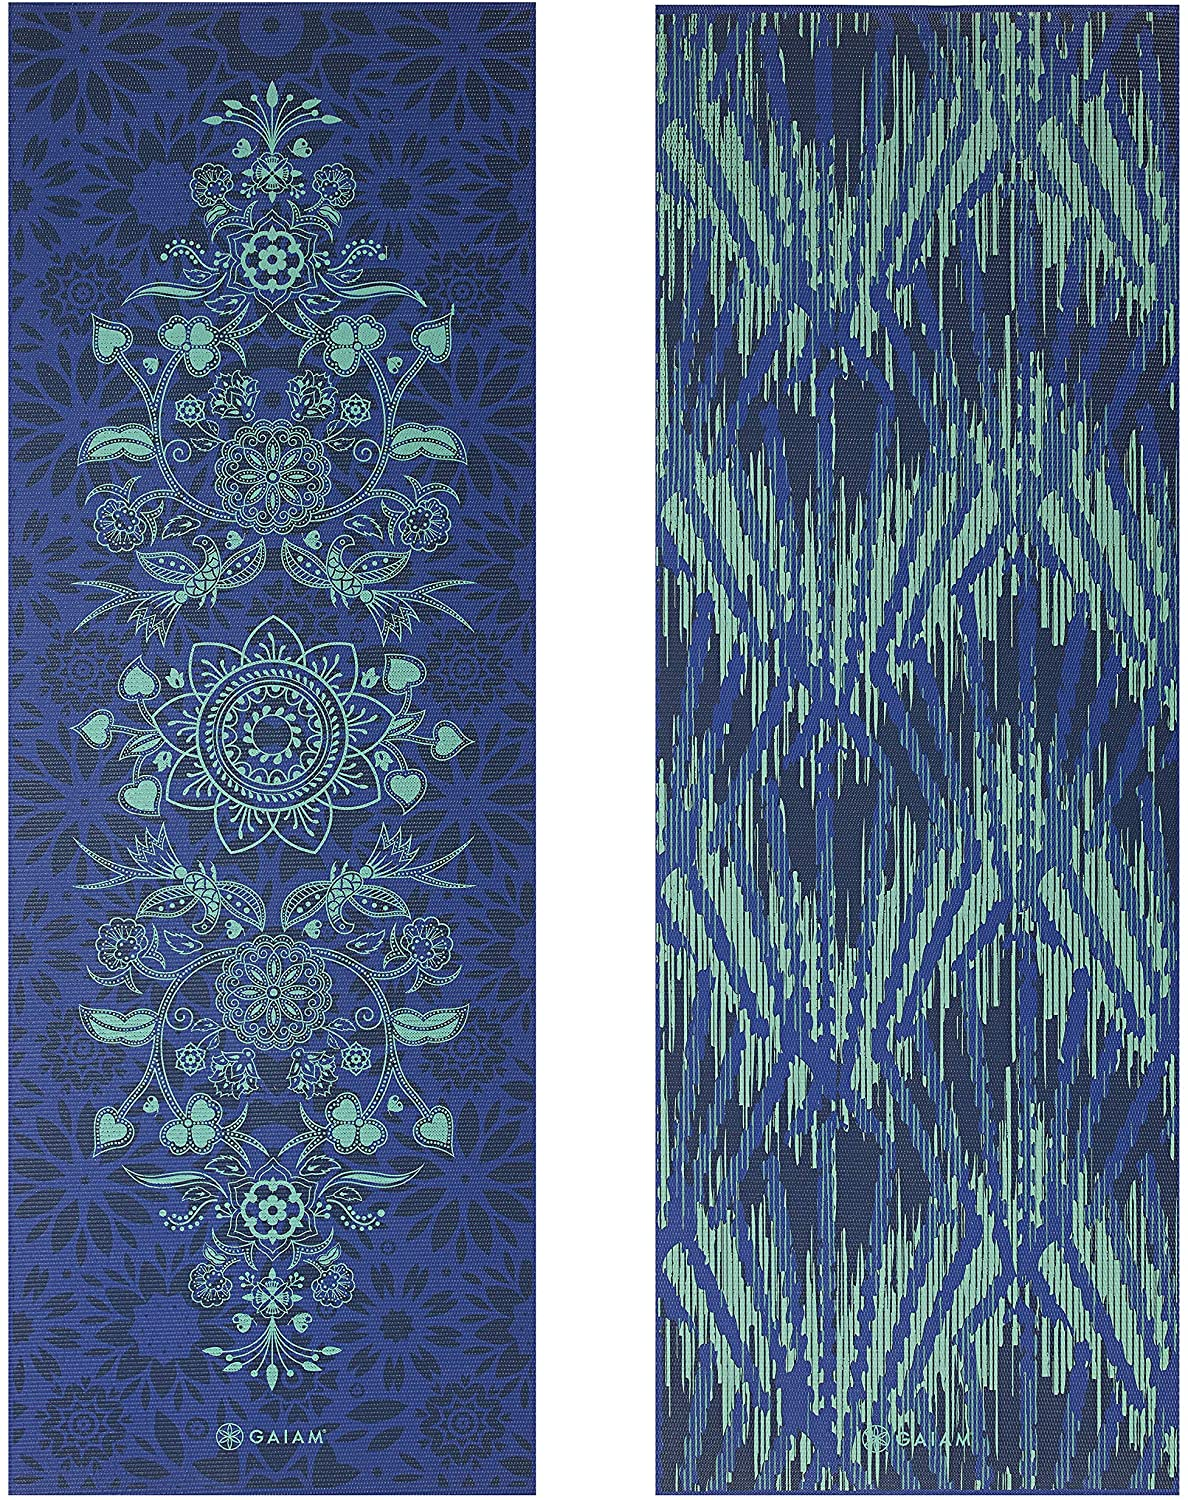 Gaiam Yoga Mat 6mm Non Slip